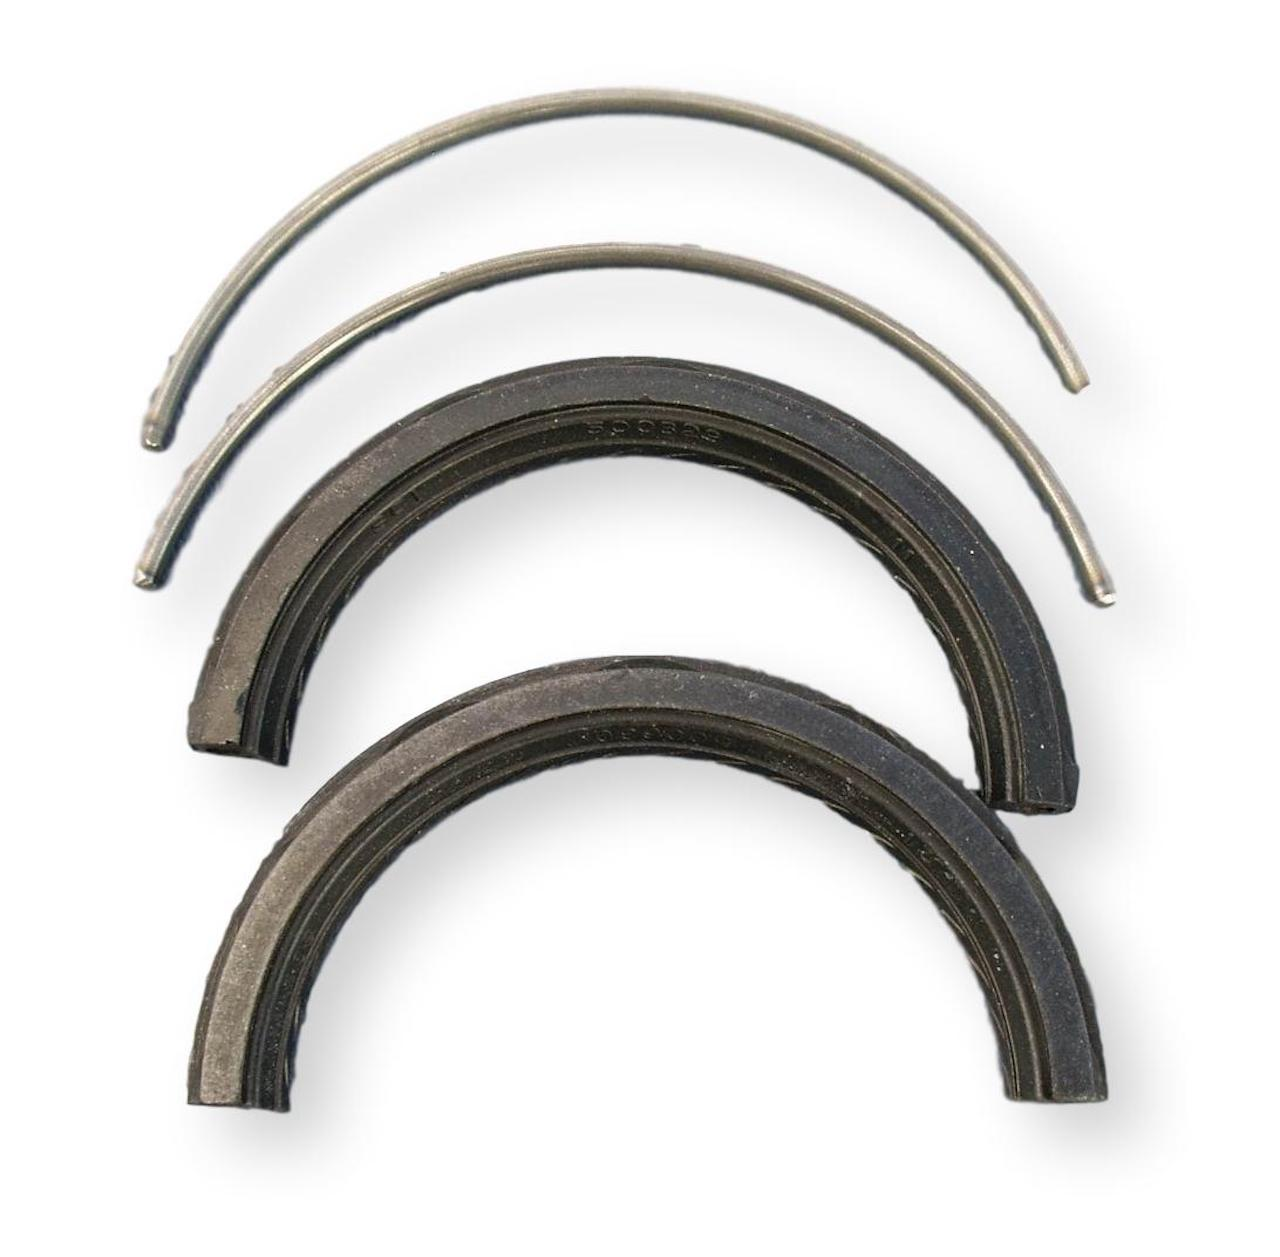 1955 1956 1957 Chevy Neoprene Rear Main Seals